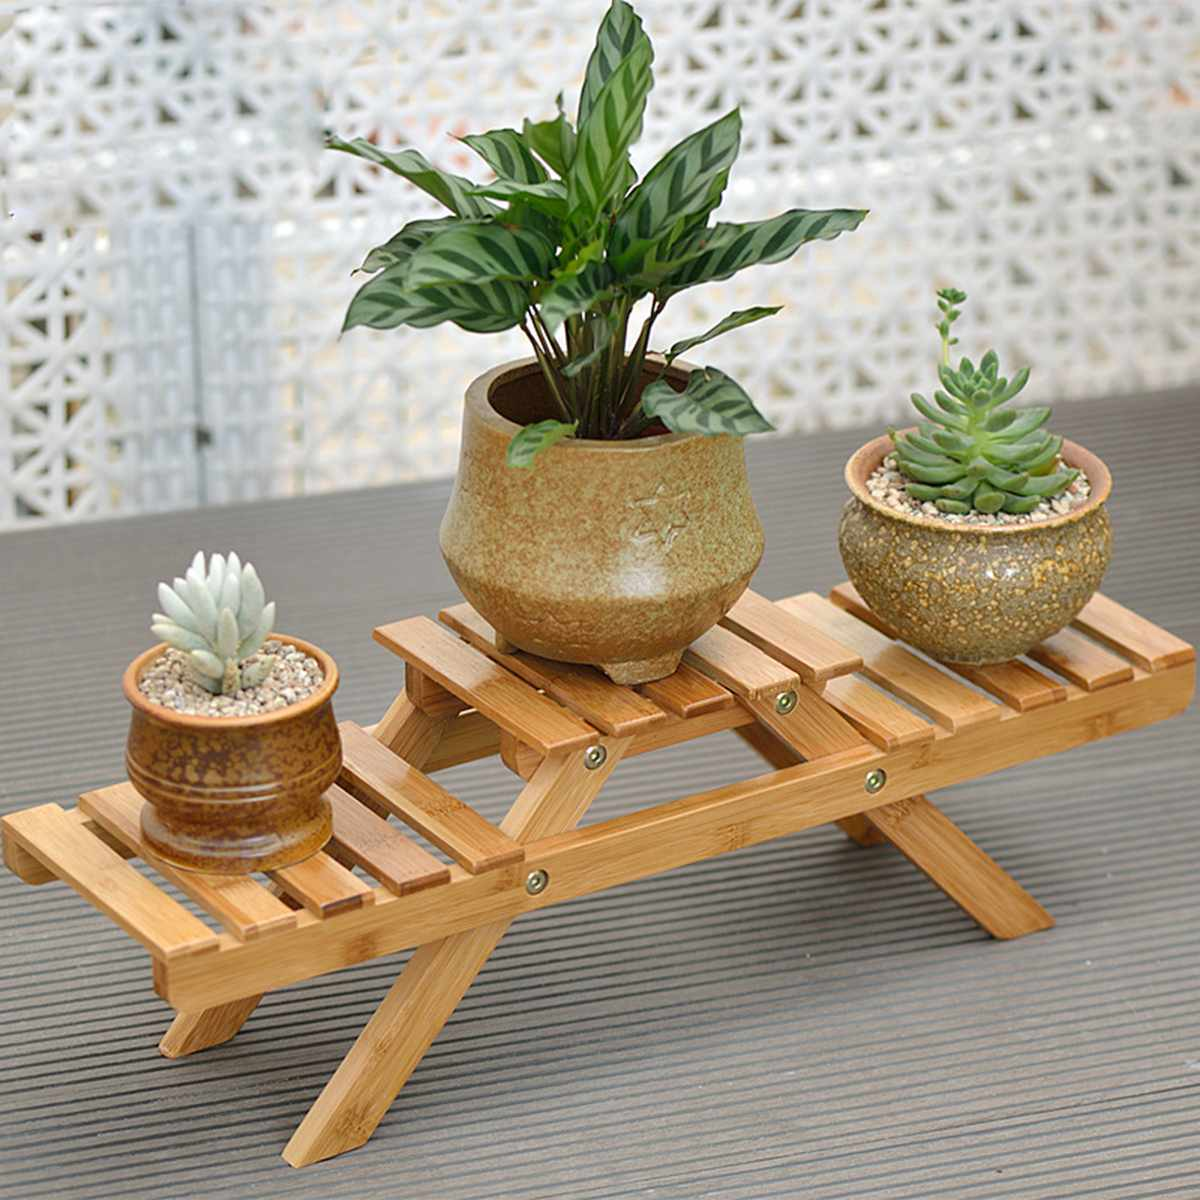 Bamboo Plant Flower Shelf Stand Flower Pot Rack Holder Garden Living Room Table Planter Display Stand Home Decor Indoor Outdoor